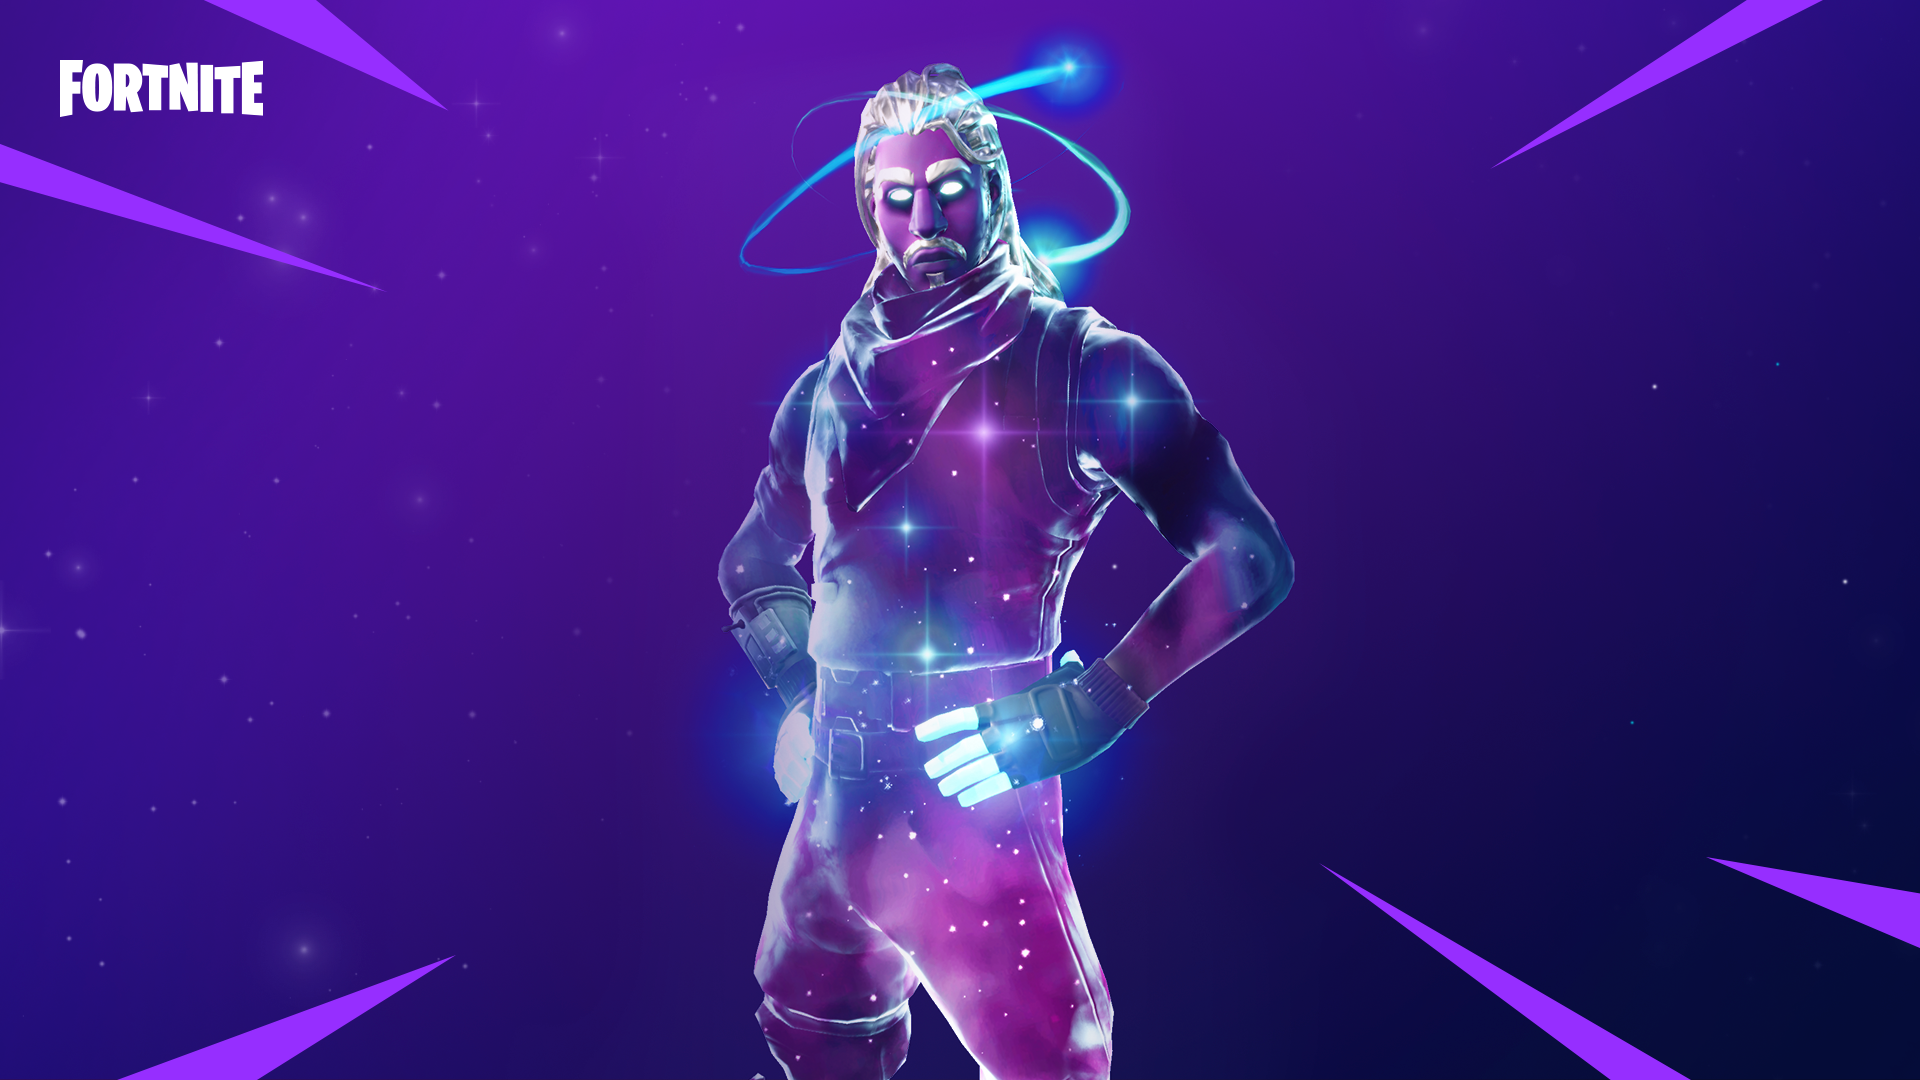 First In Game Look at New Fortnite Galaxy Skin Cosmetics 1920x1080